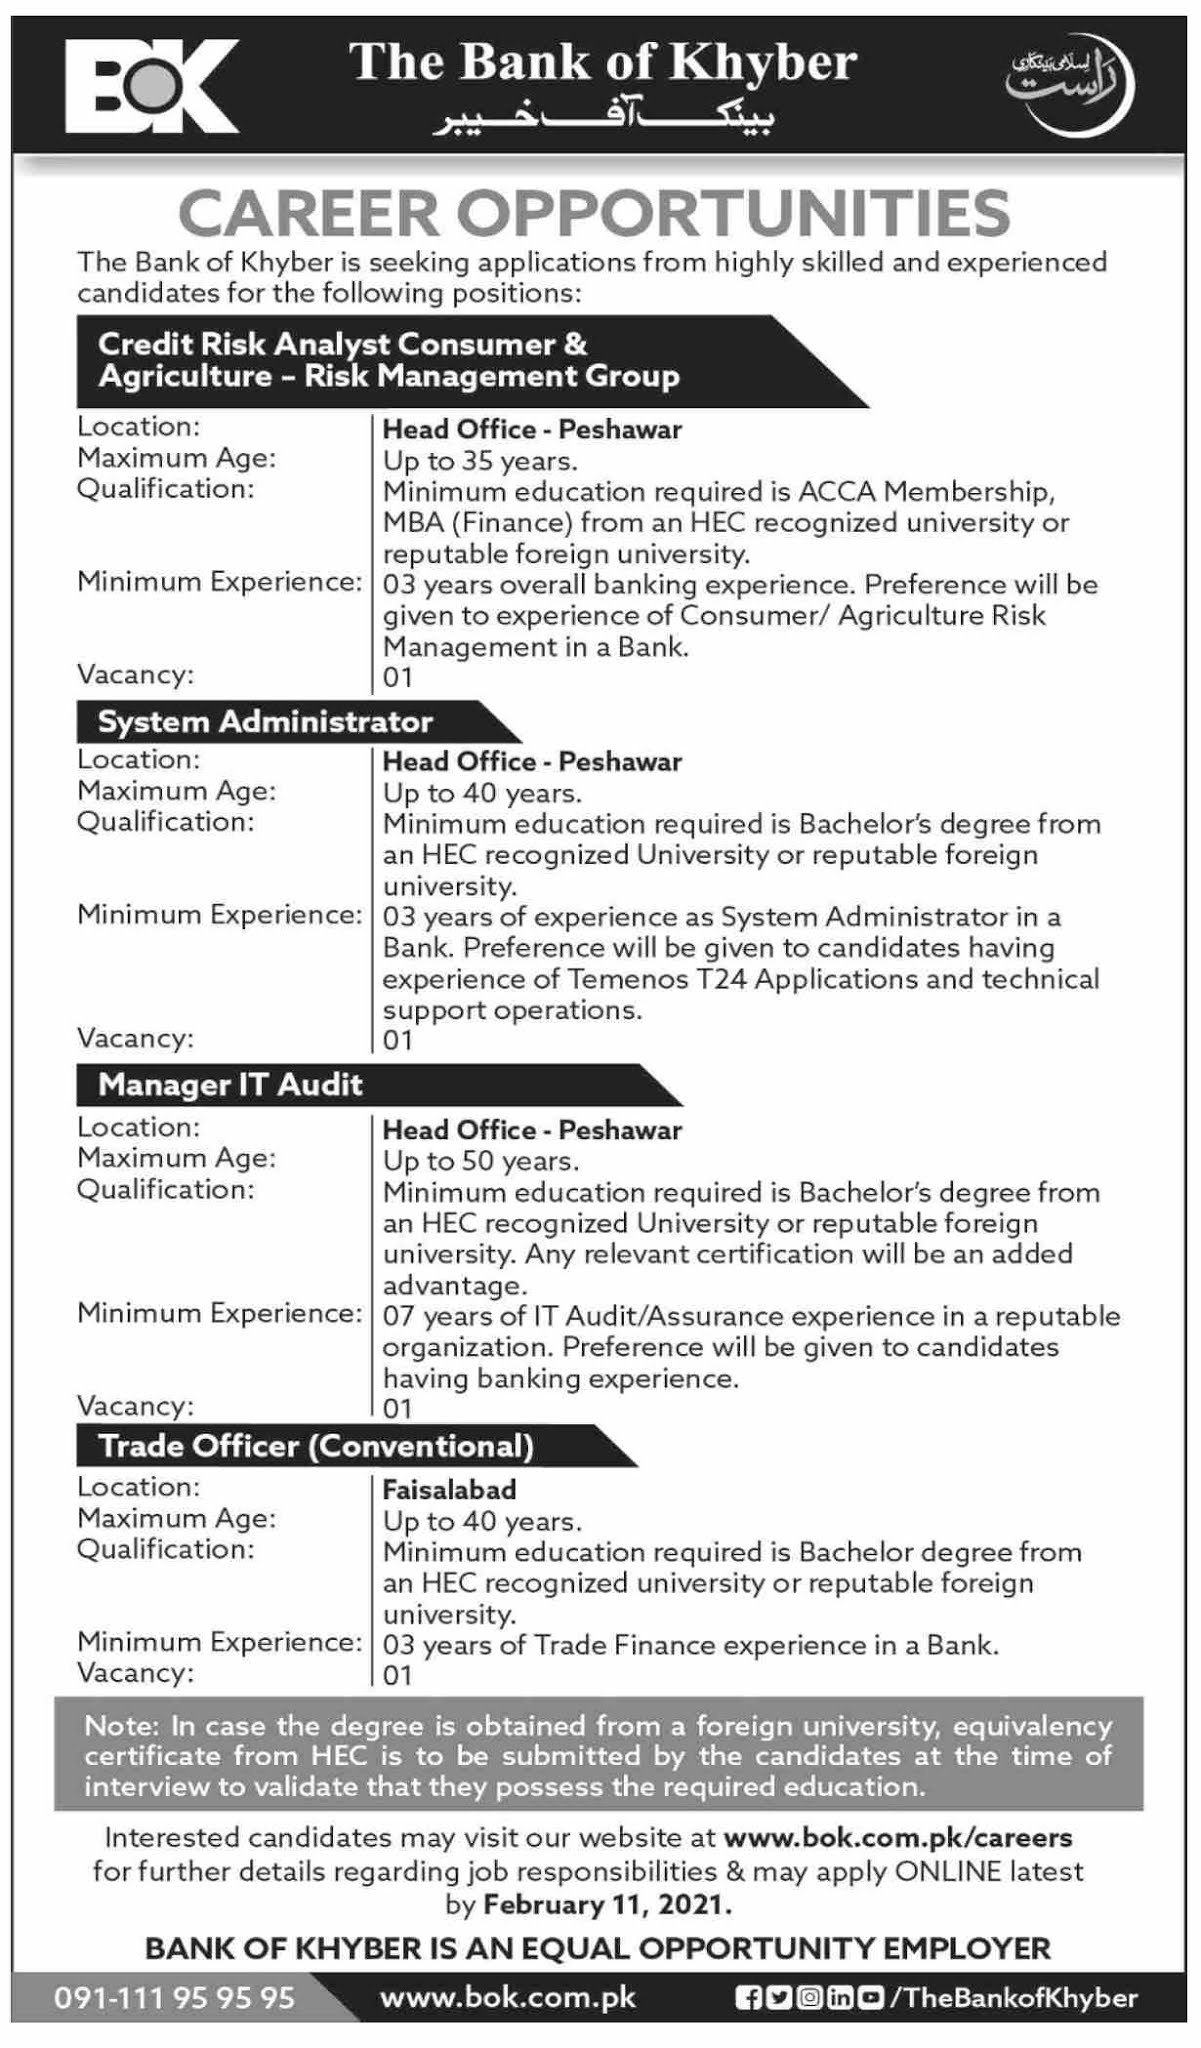 BOK Job Advertisement - Job BOK - BOK Careers - BOK Jobs - Bank of Khyber Career - Bank of Khyber Jobs 2021 - Bank of Khyber Jobs Advertisement